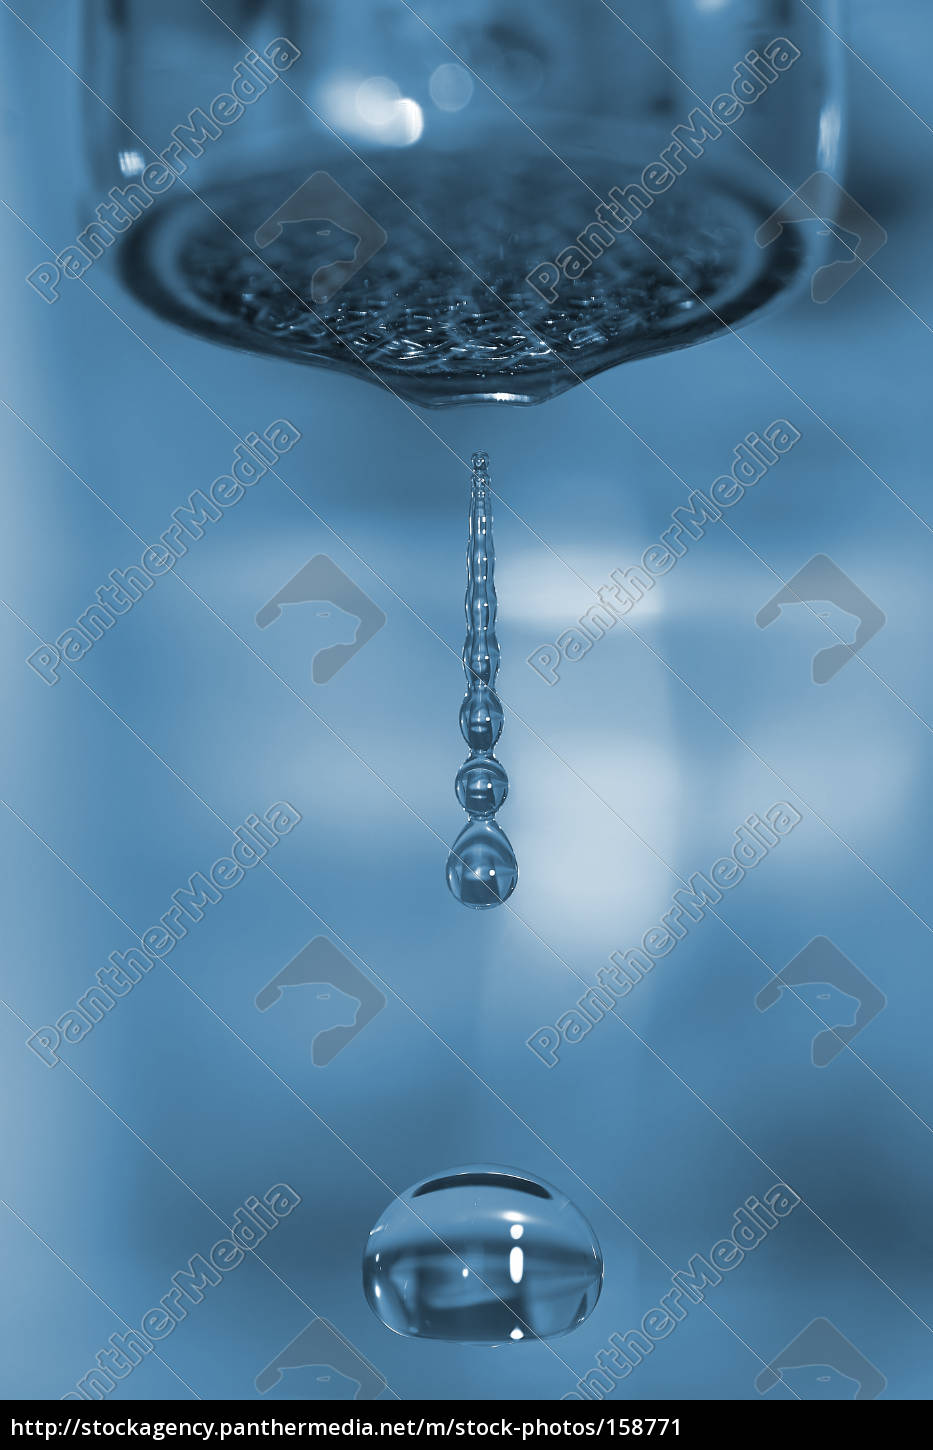 water, games, [blue] - 158771